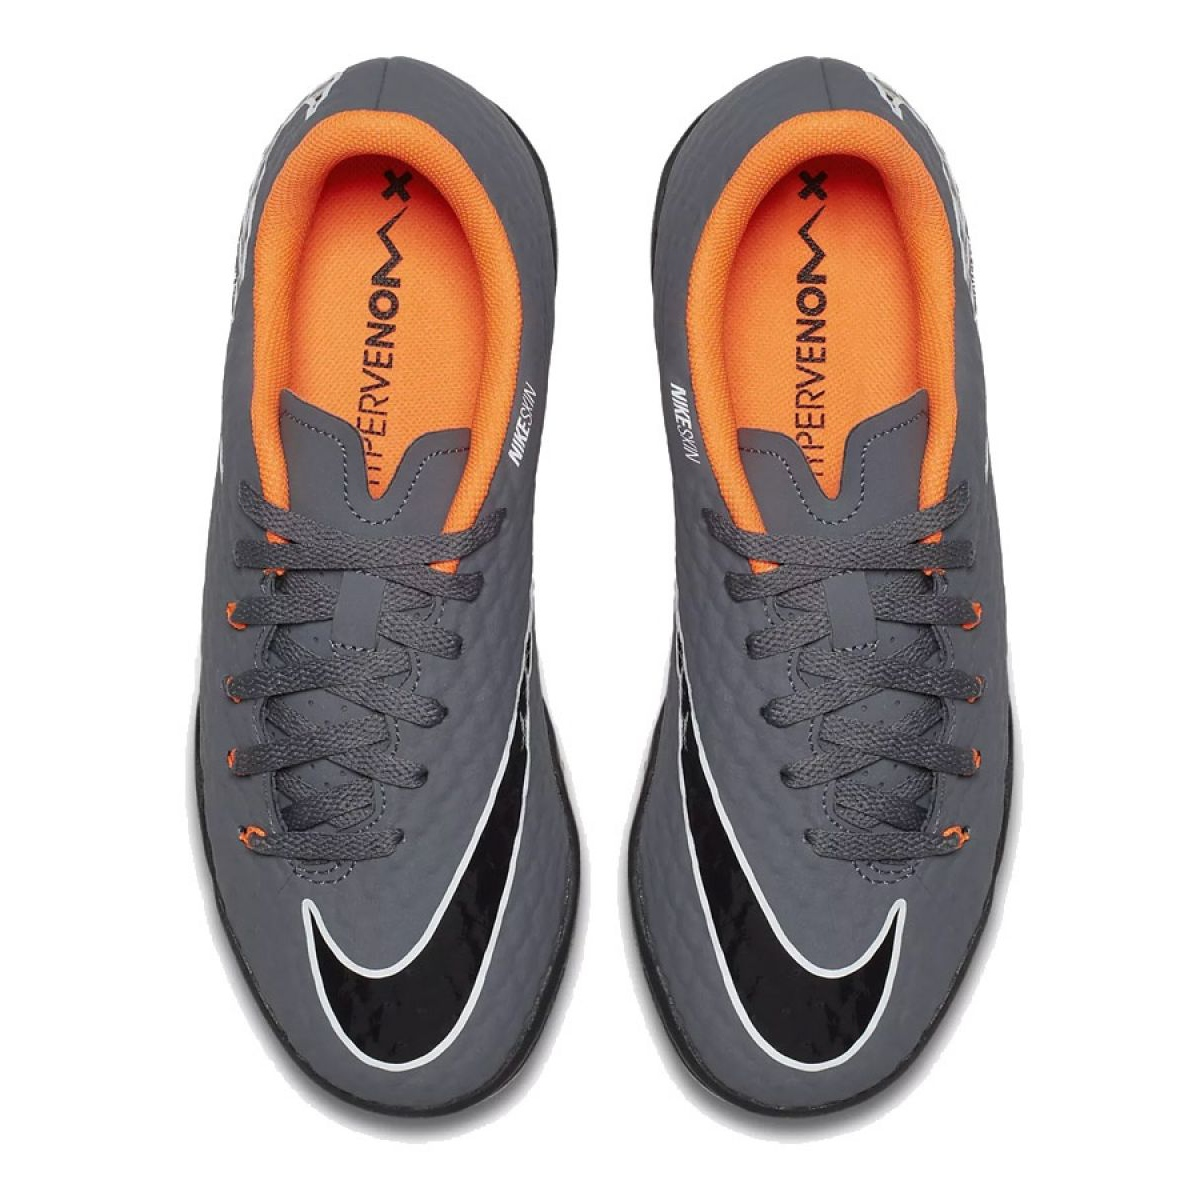 quality design 7080e 16899 Nike Hypervenom PhantomX 3 Academy Tf Jr AH7294-081-S Football Boots